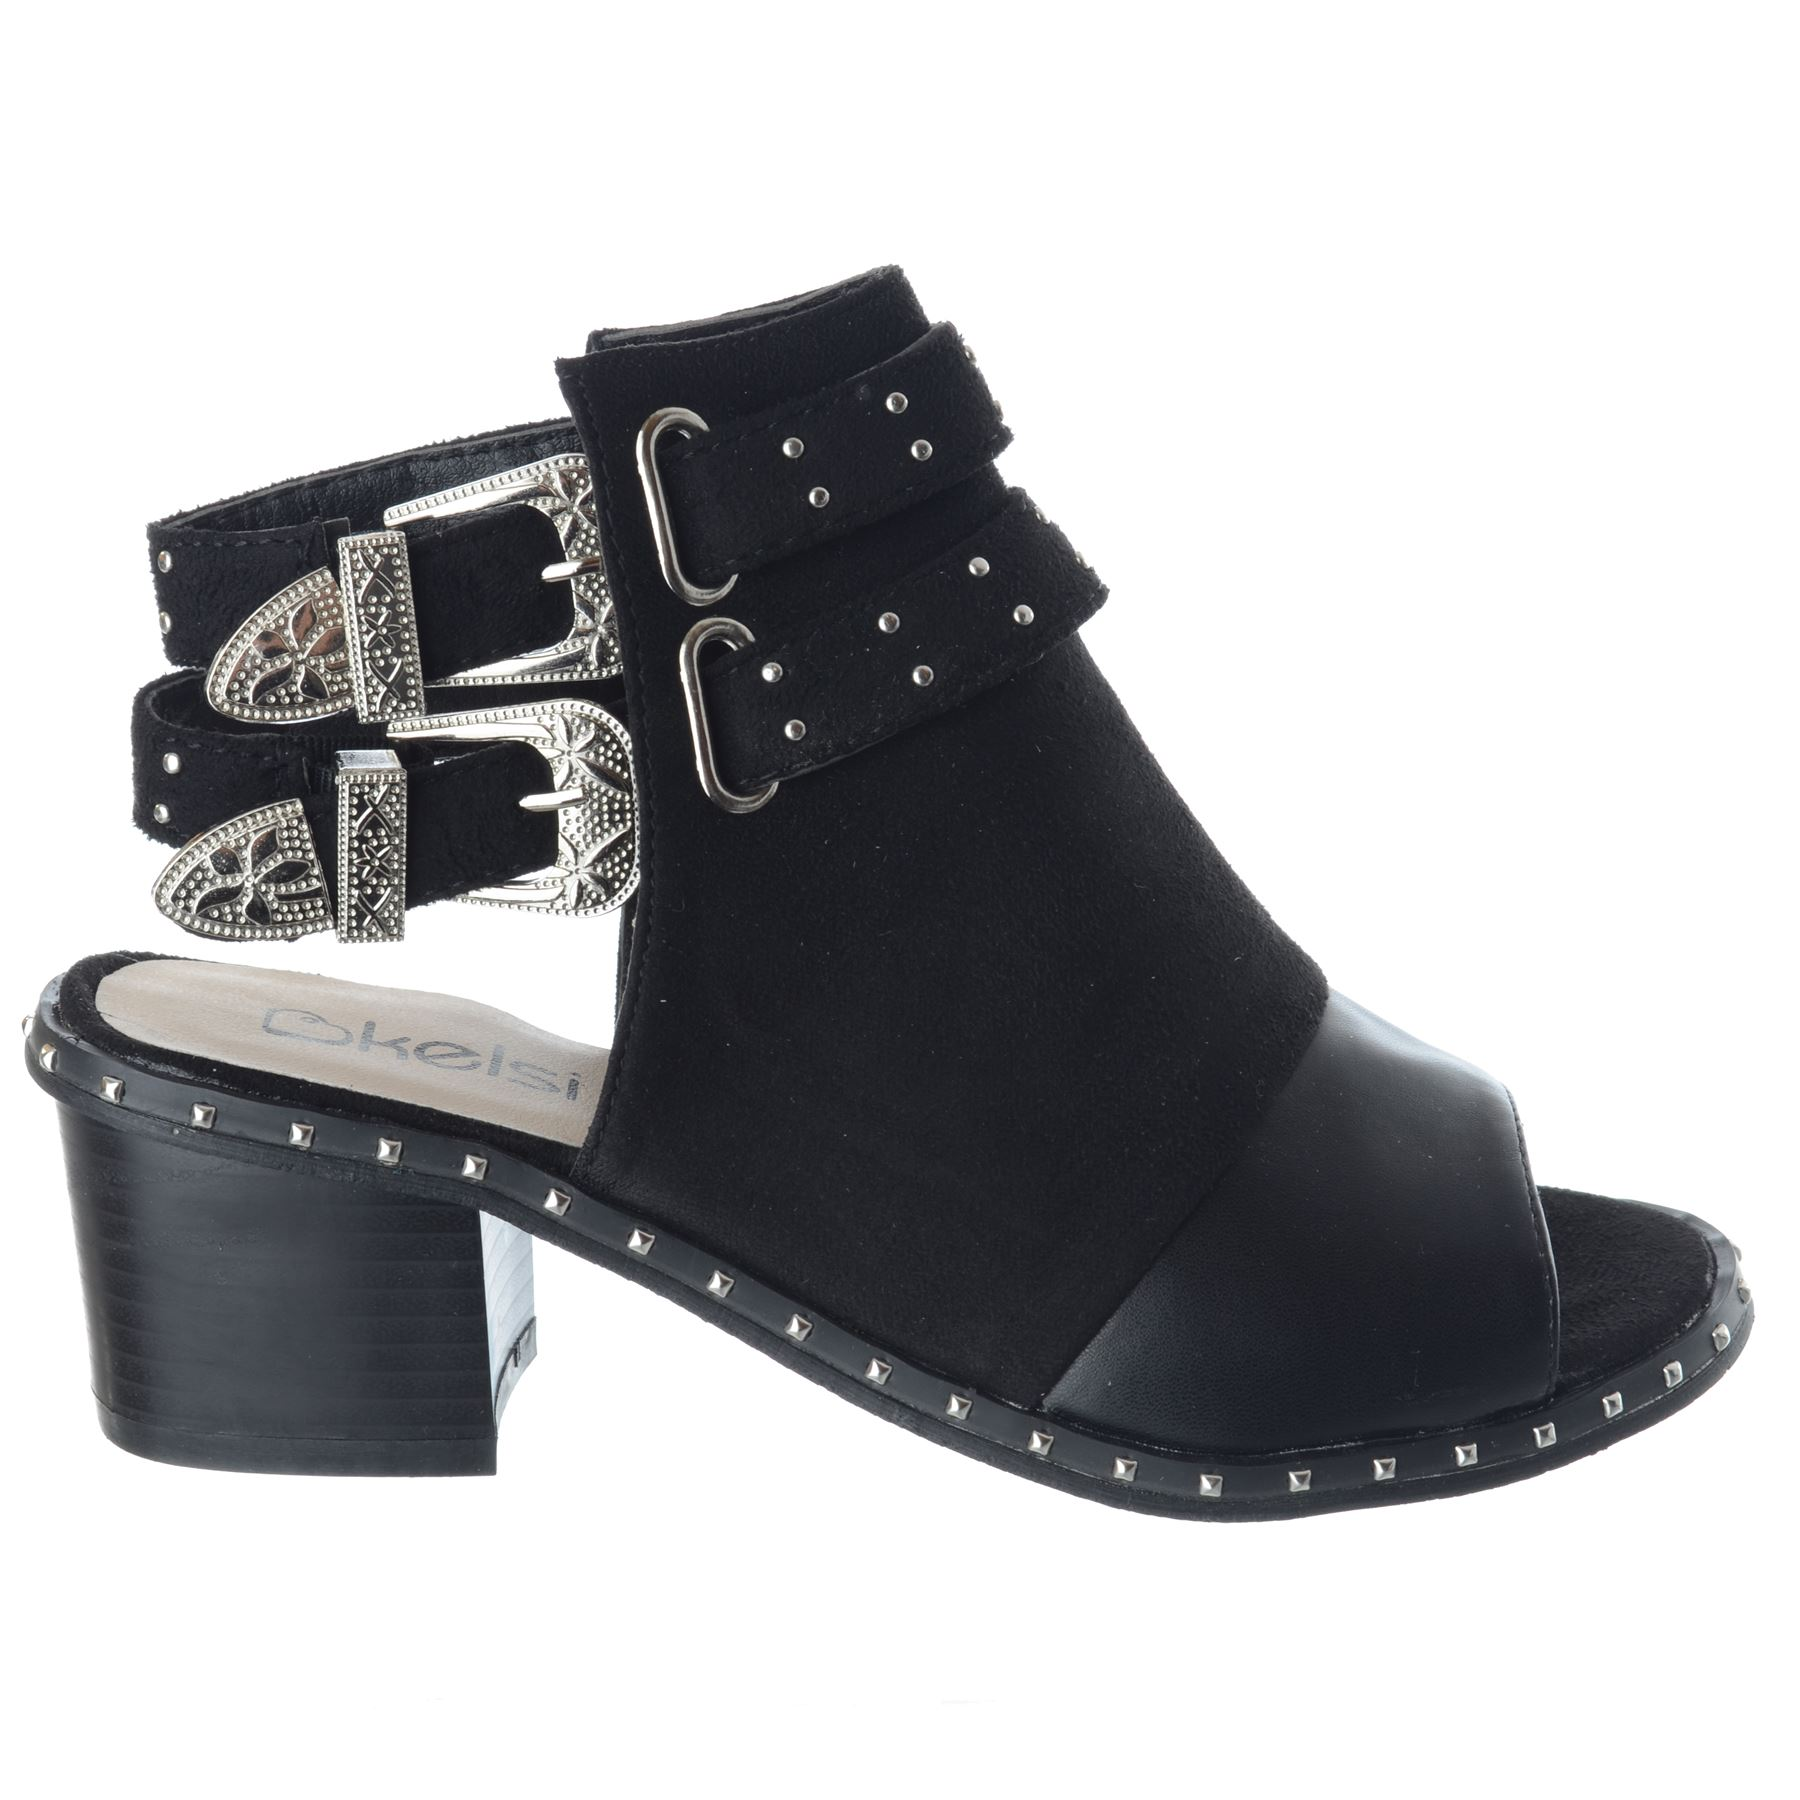 Womens-Ladies-Studded-Peep-Toe-Ankle-Strap-Chunky-Block-Heel-Sandals-Shoes-Size thumbnail 6